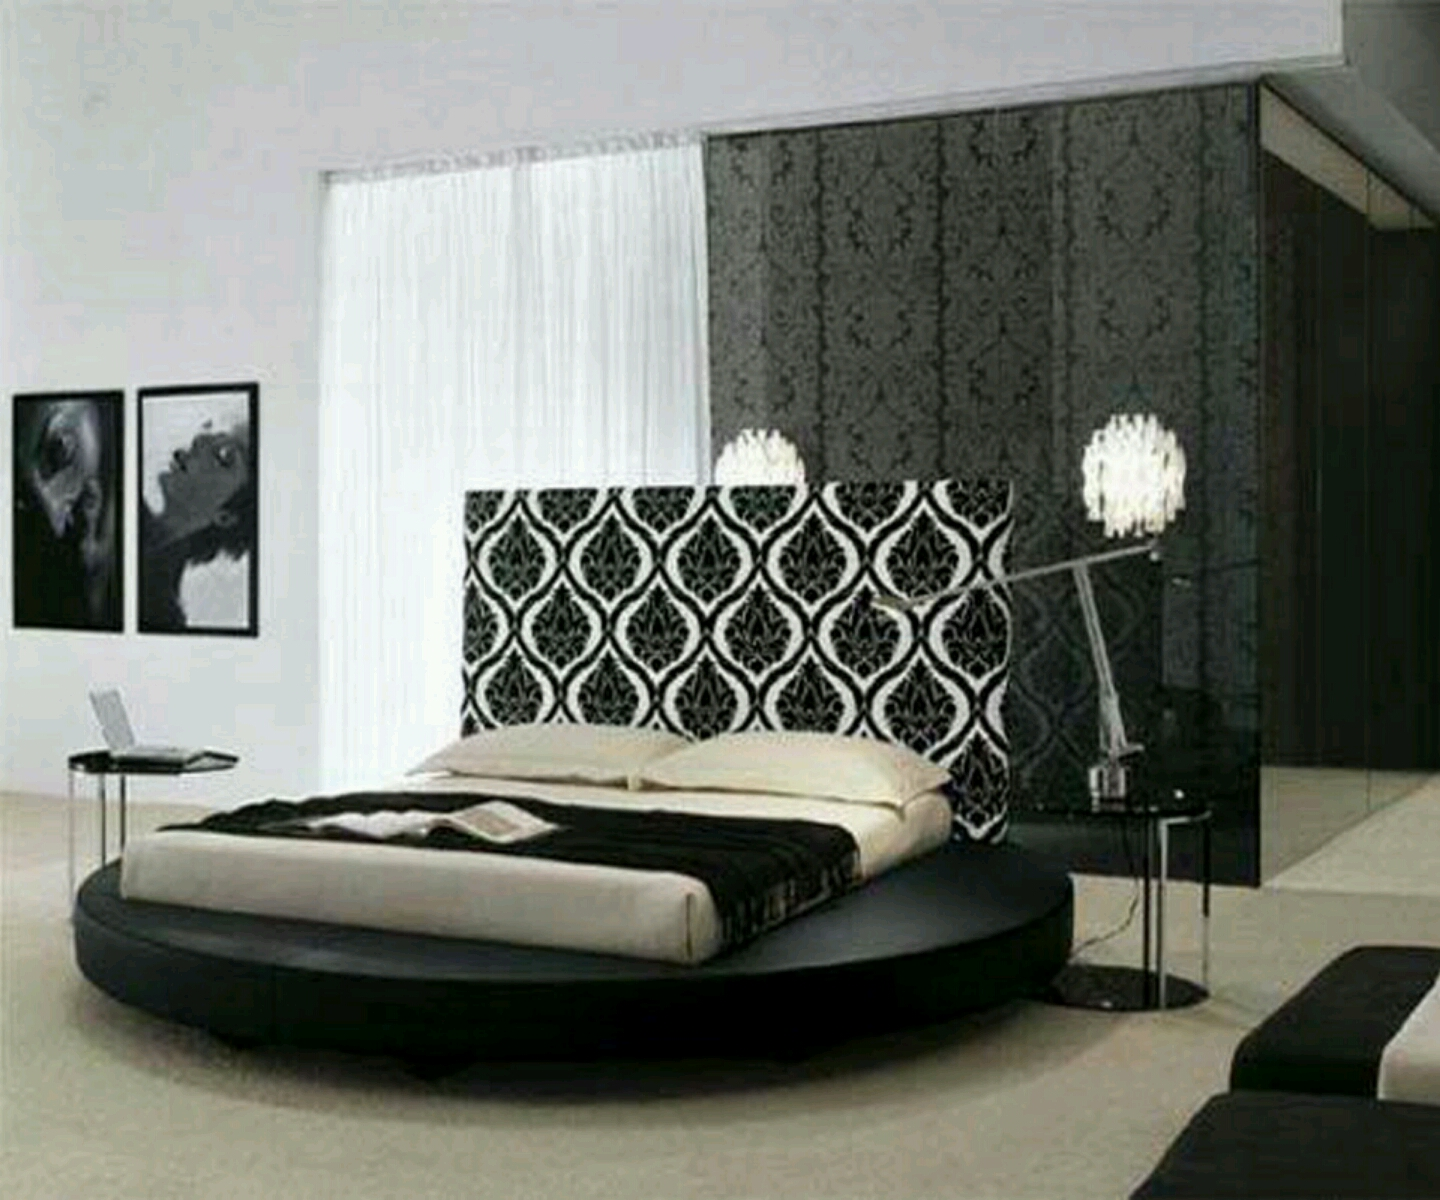 Modern Bed Back Designs : Modern Beds Designs. modern bed back designs. modern bed base designs ...